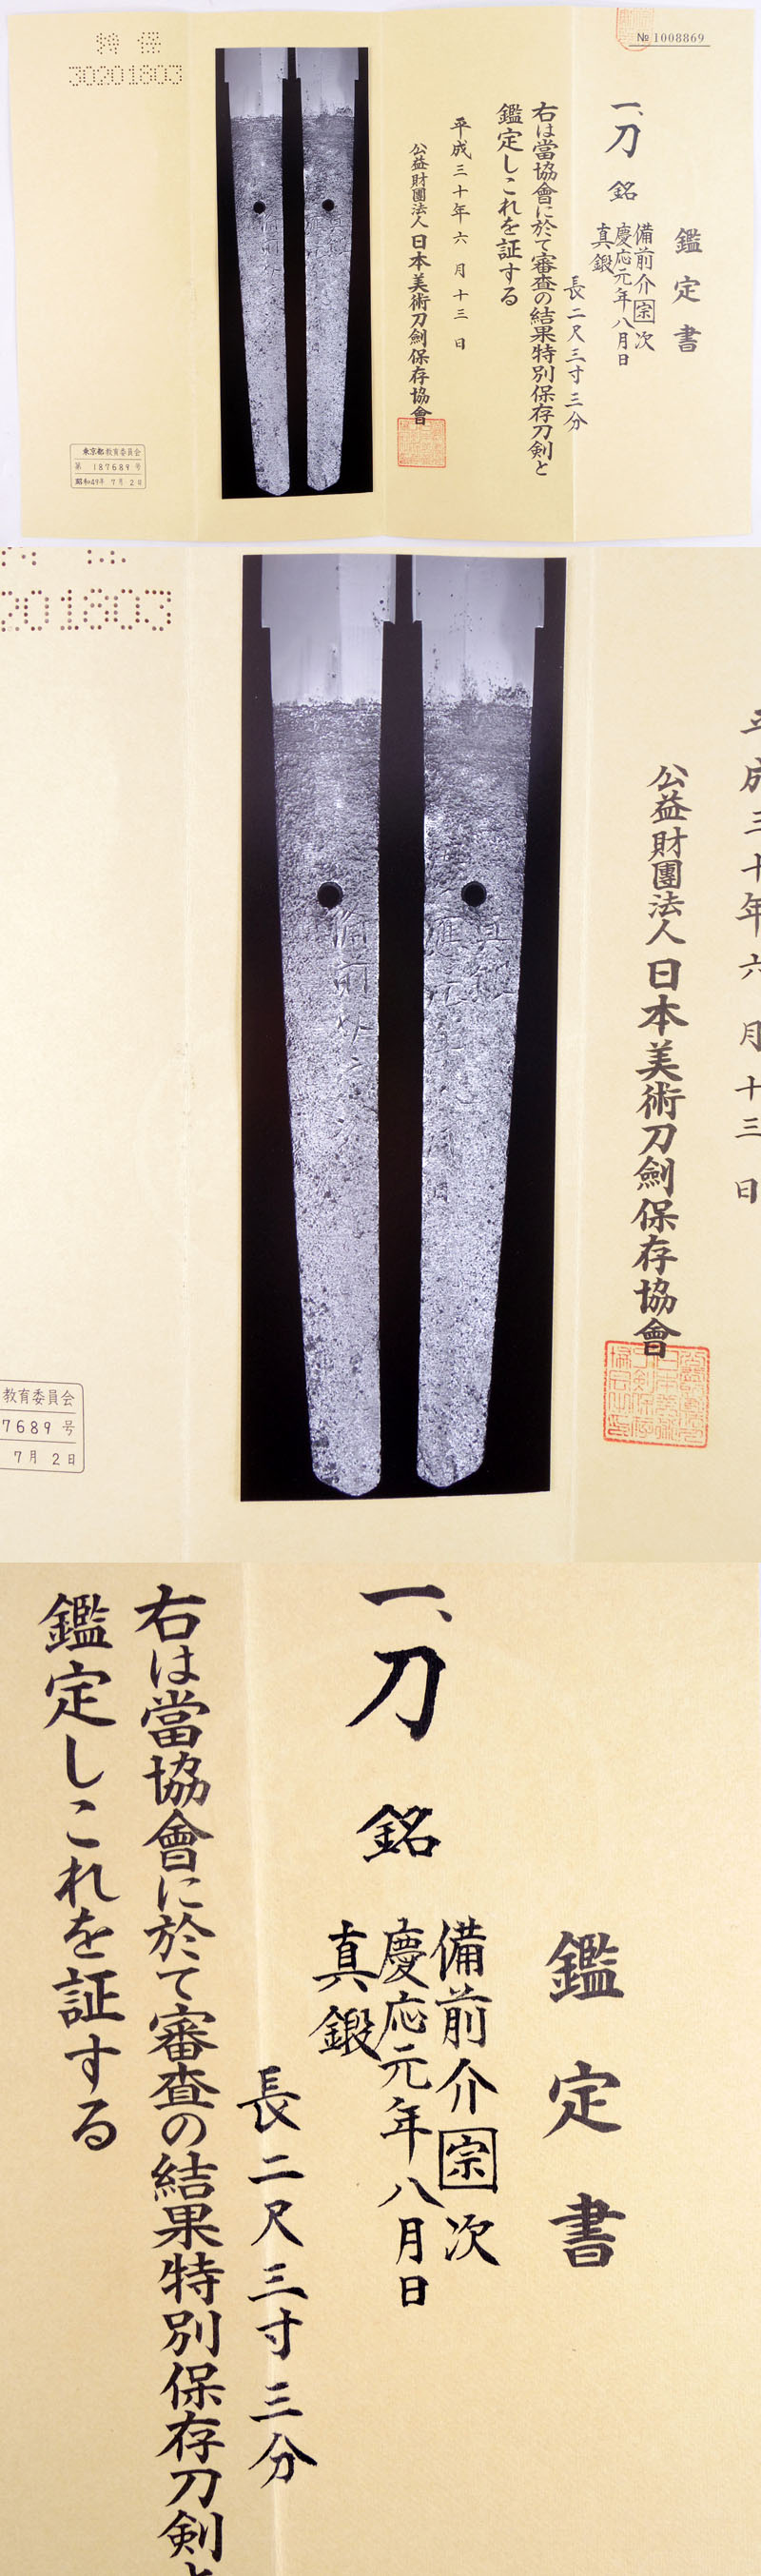 備前介宗次 (初代固山宗次)  Picture of Certificate